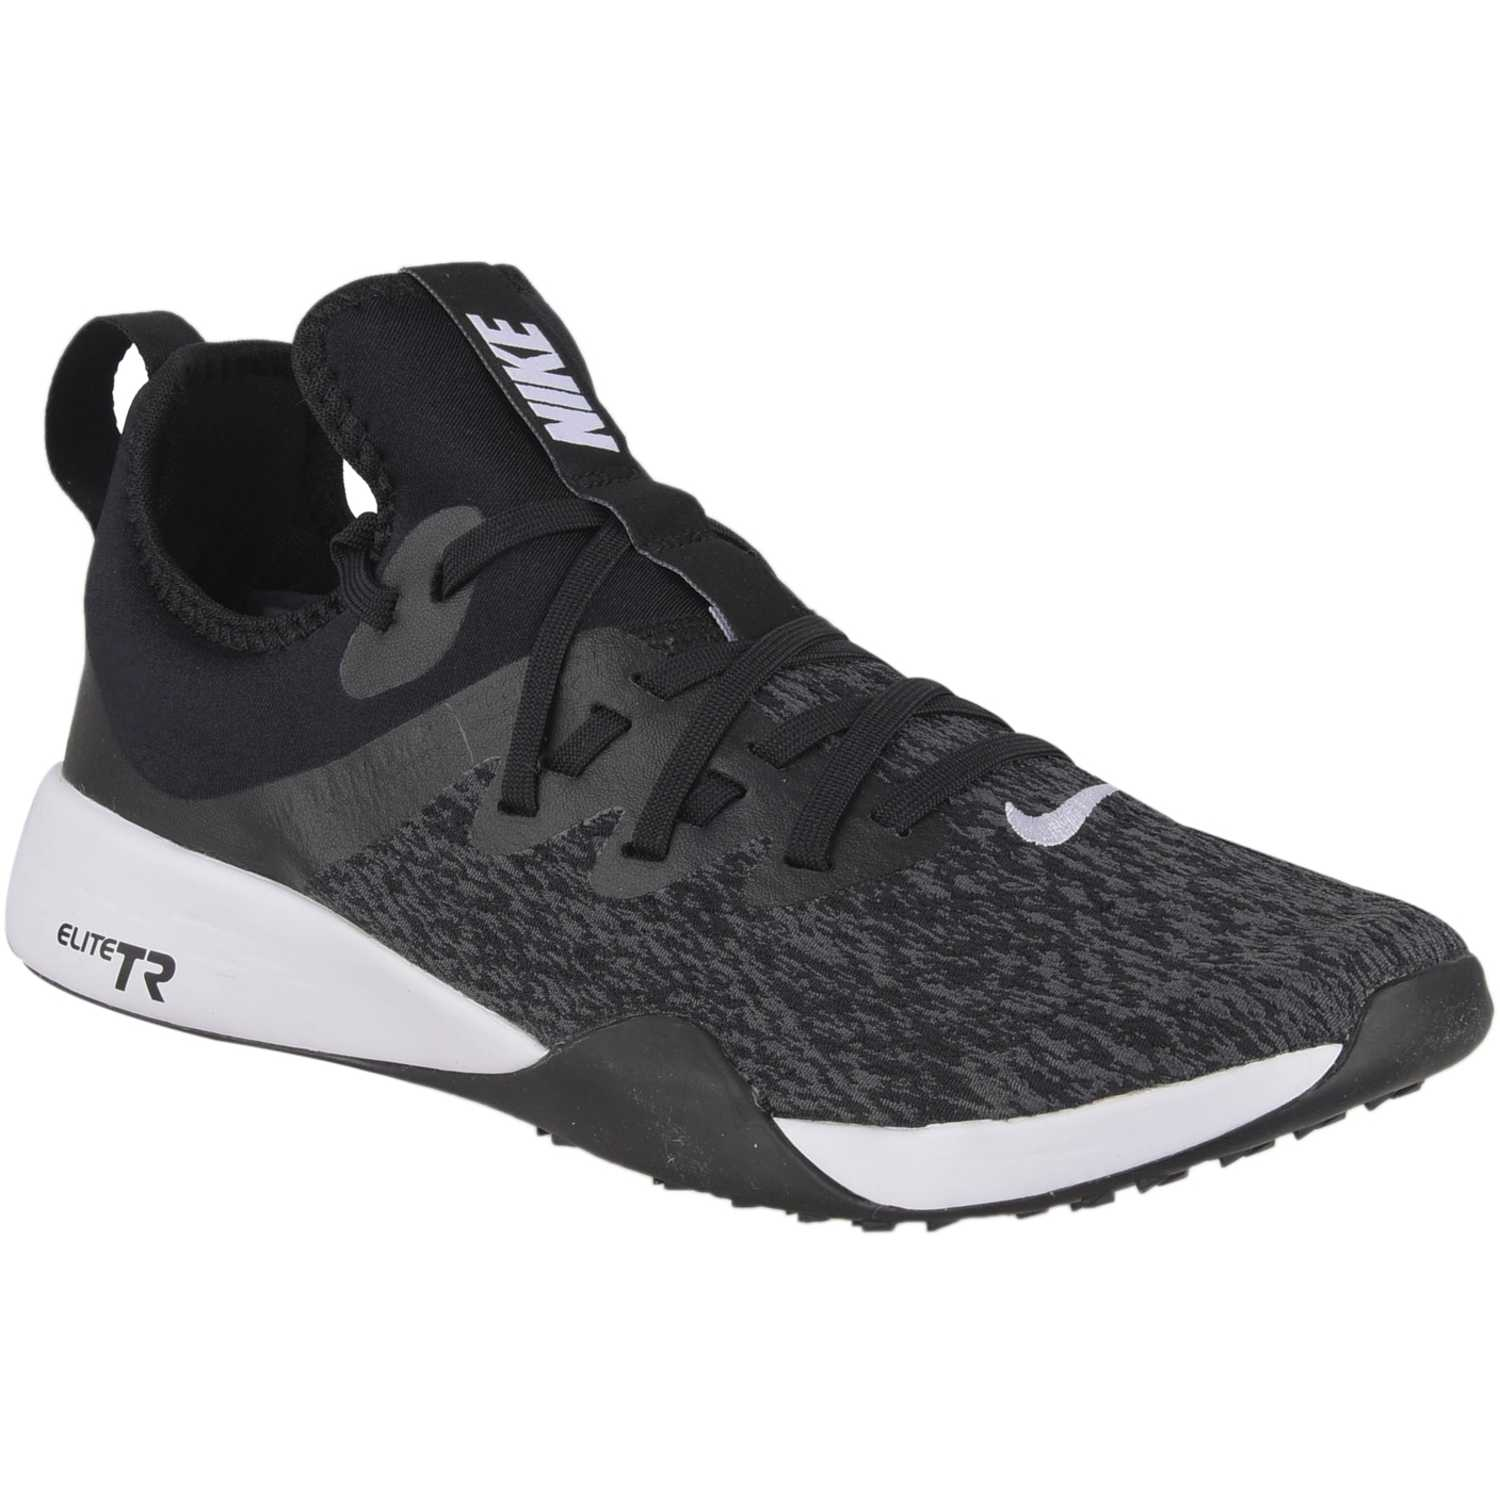 2f5d267d Deportivo de Mujer Nike Negro /gris wmns nike foundation elite tr ...